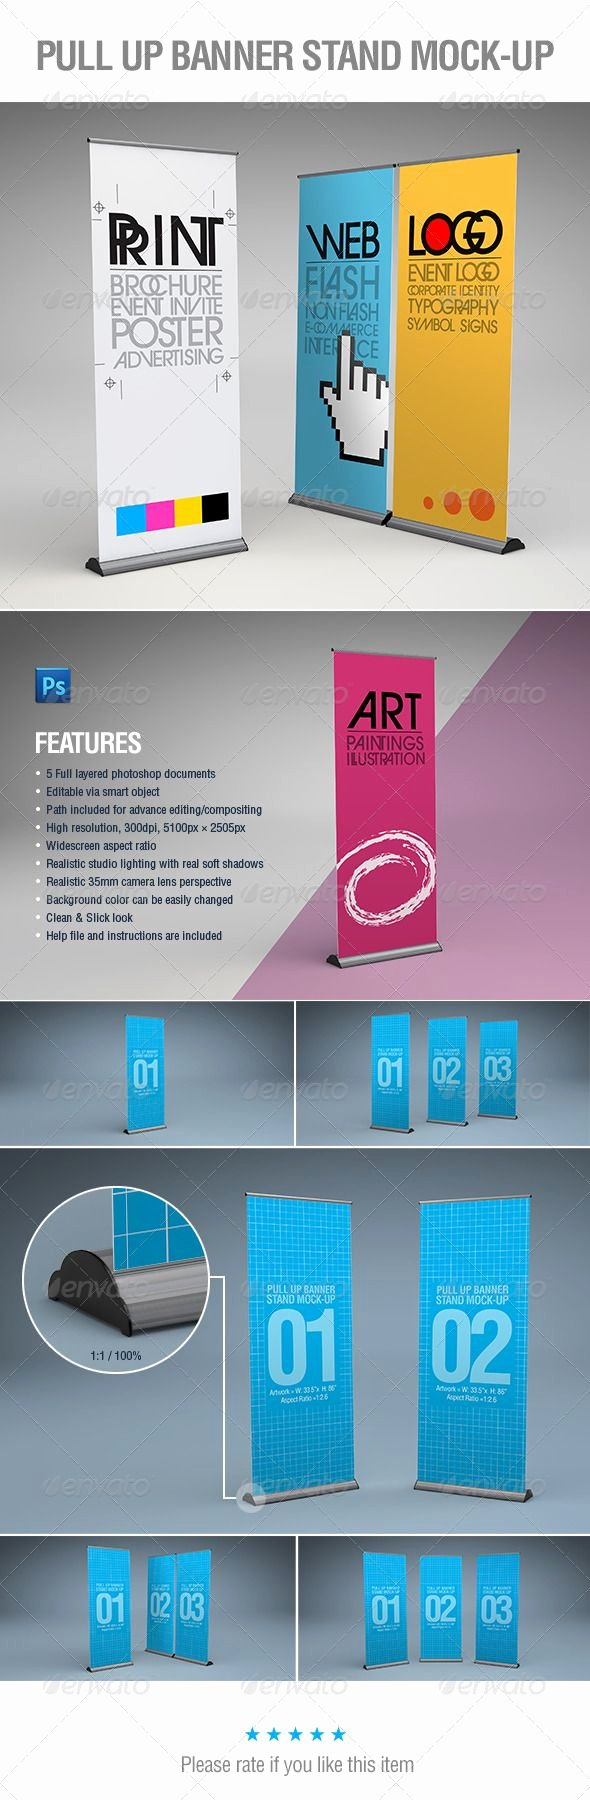 Stand Up Banner Designs Elegant Best 25 Banner Stands Ideas On Pinterest